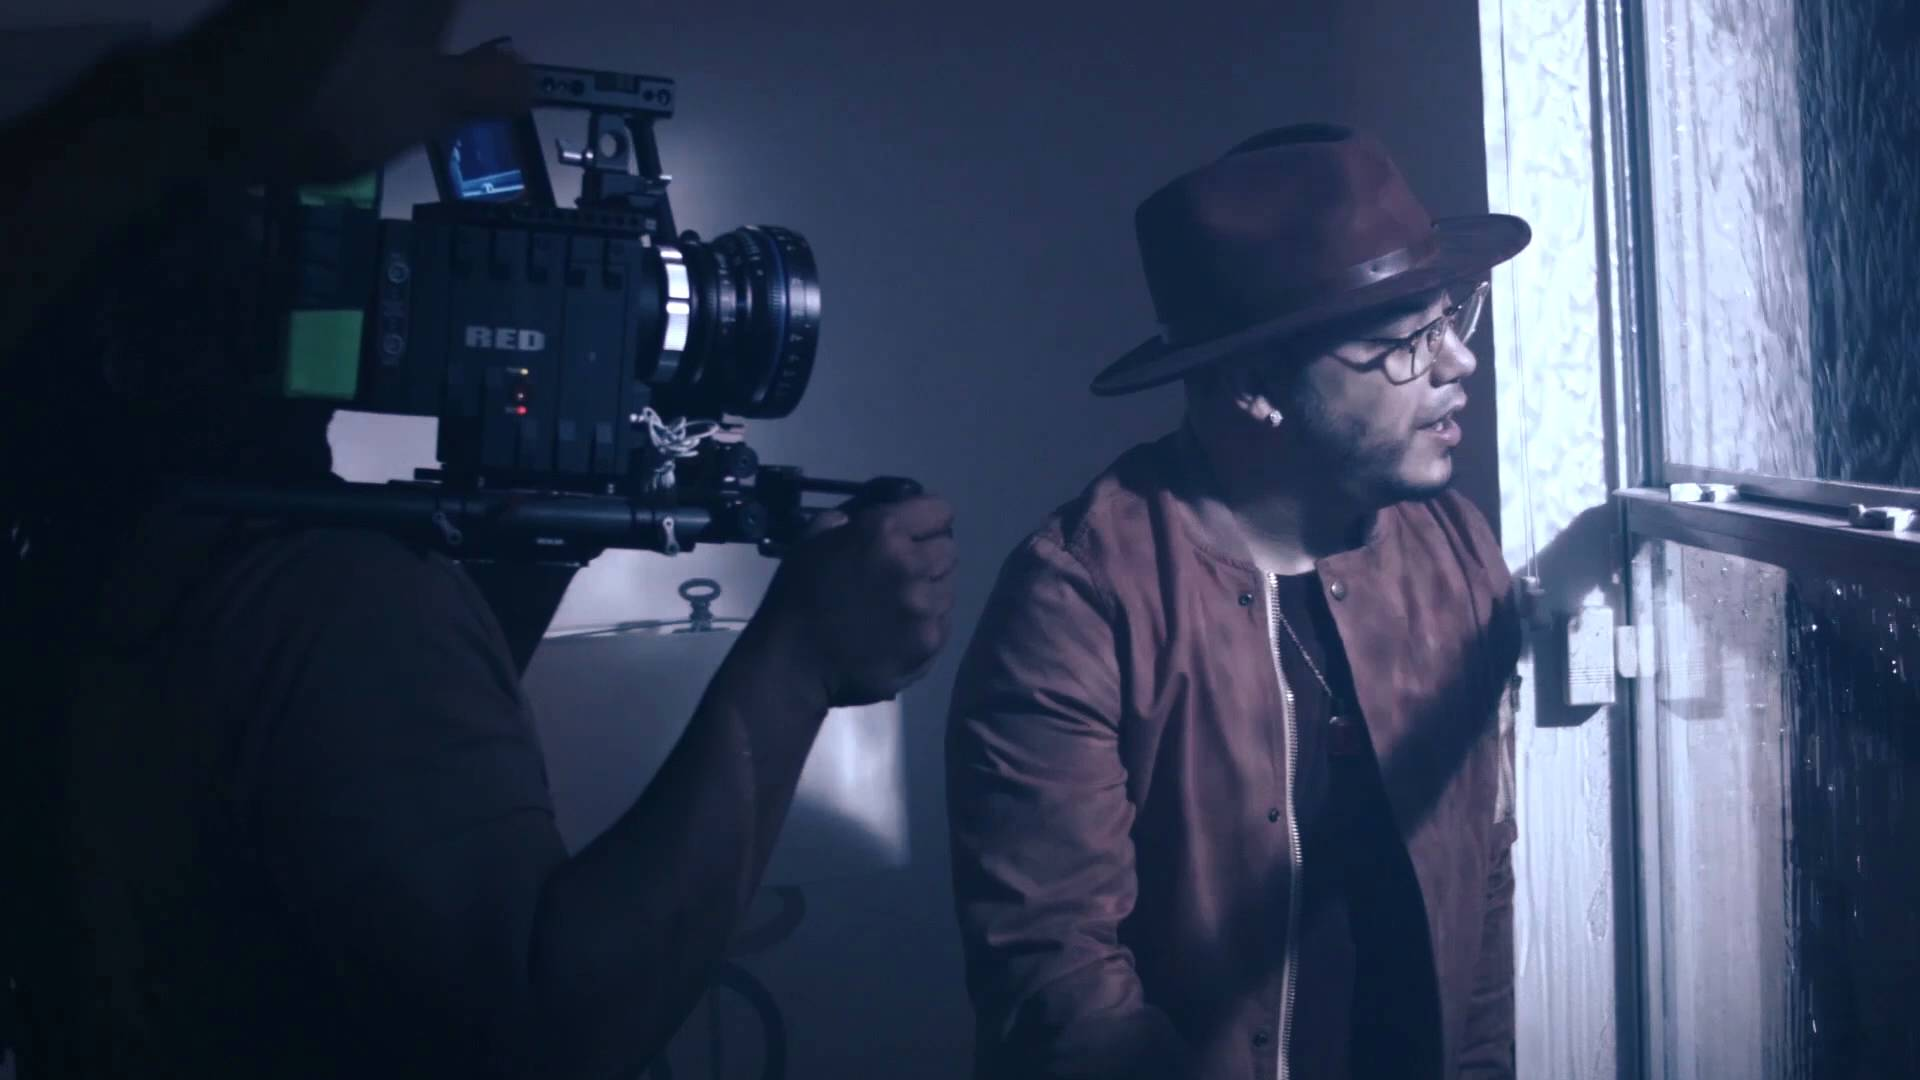 Jory Boy – No Me Condenes (Behind The Scenes)